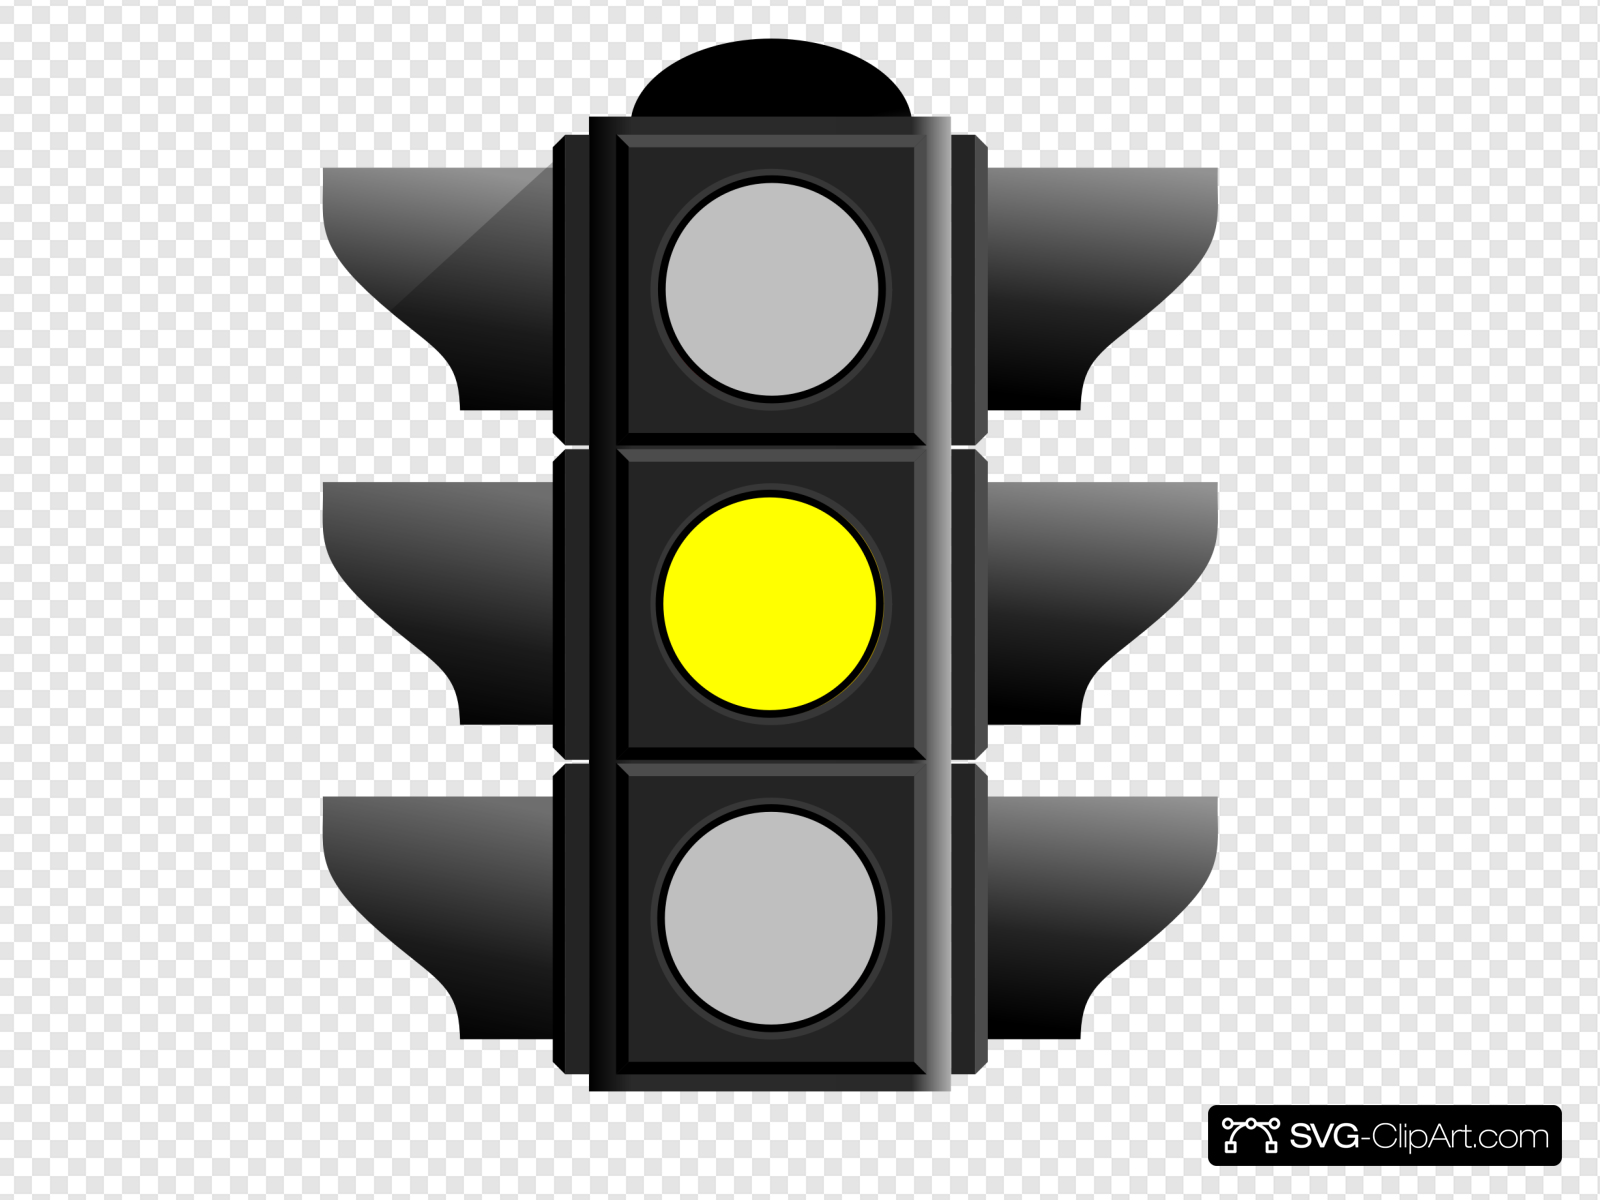 Yellow Traffic Light Clip art, Icon and SVG.